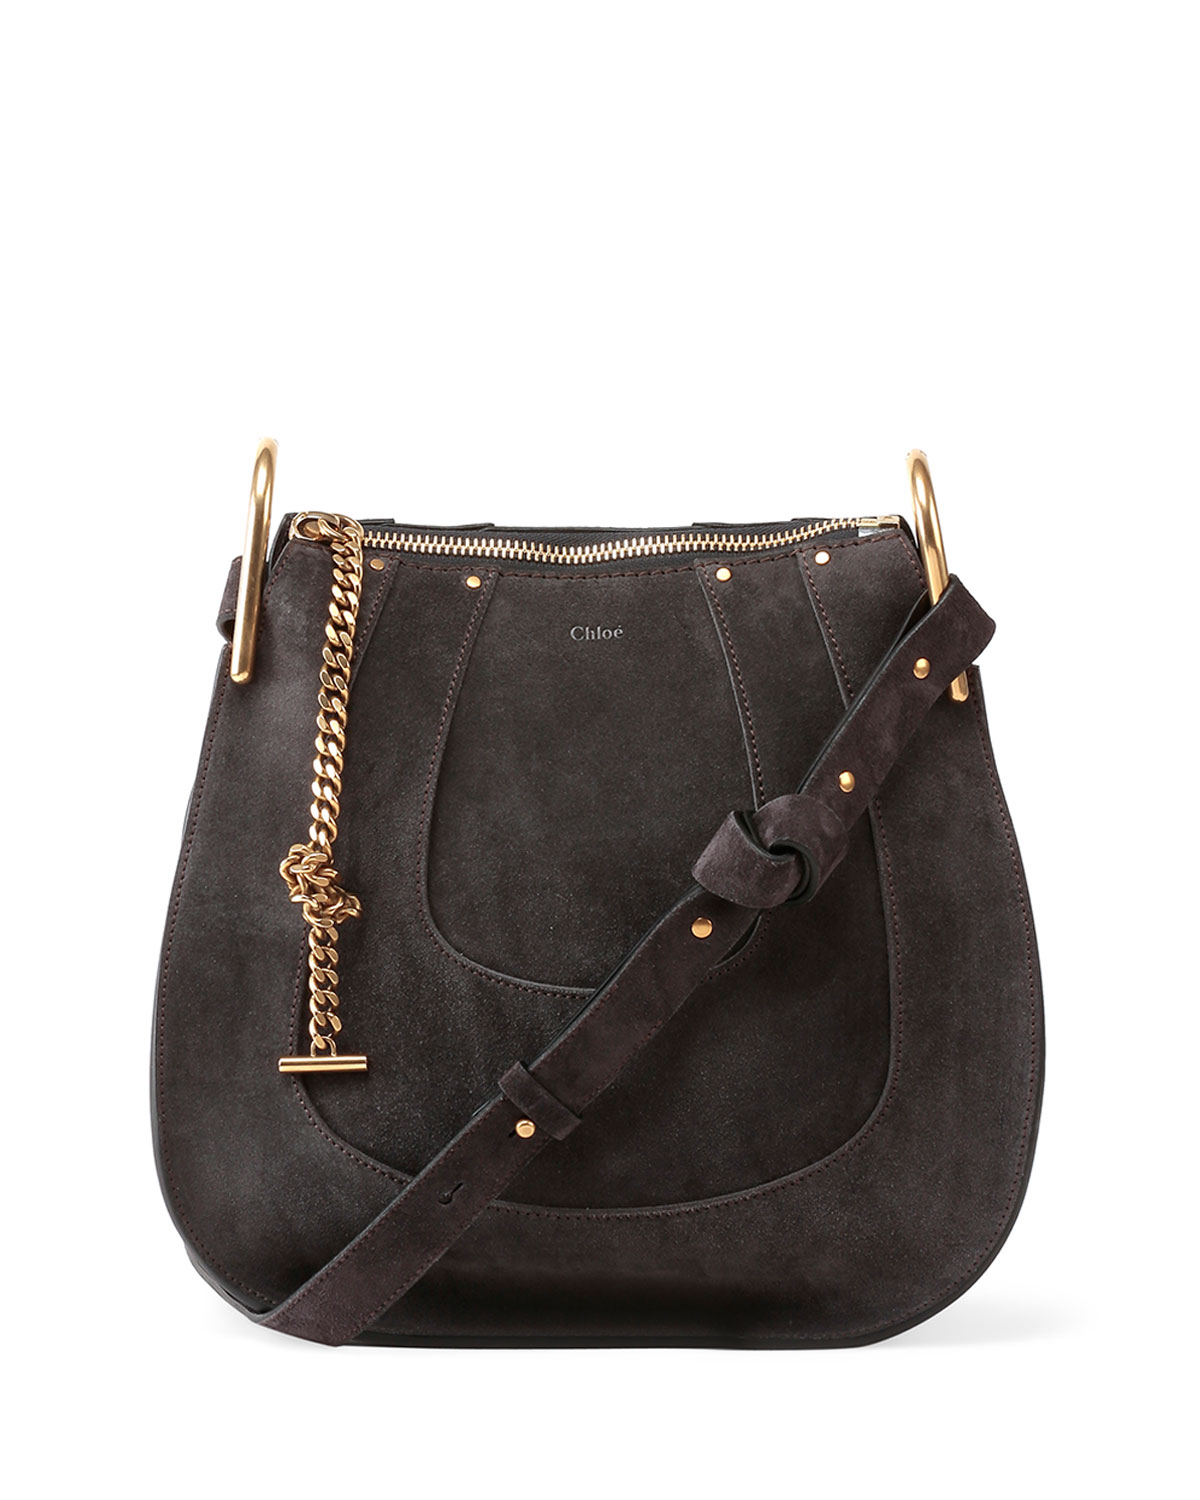 Chloé Hayley Small Suede Hobo Bag in Gray | Lyst